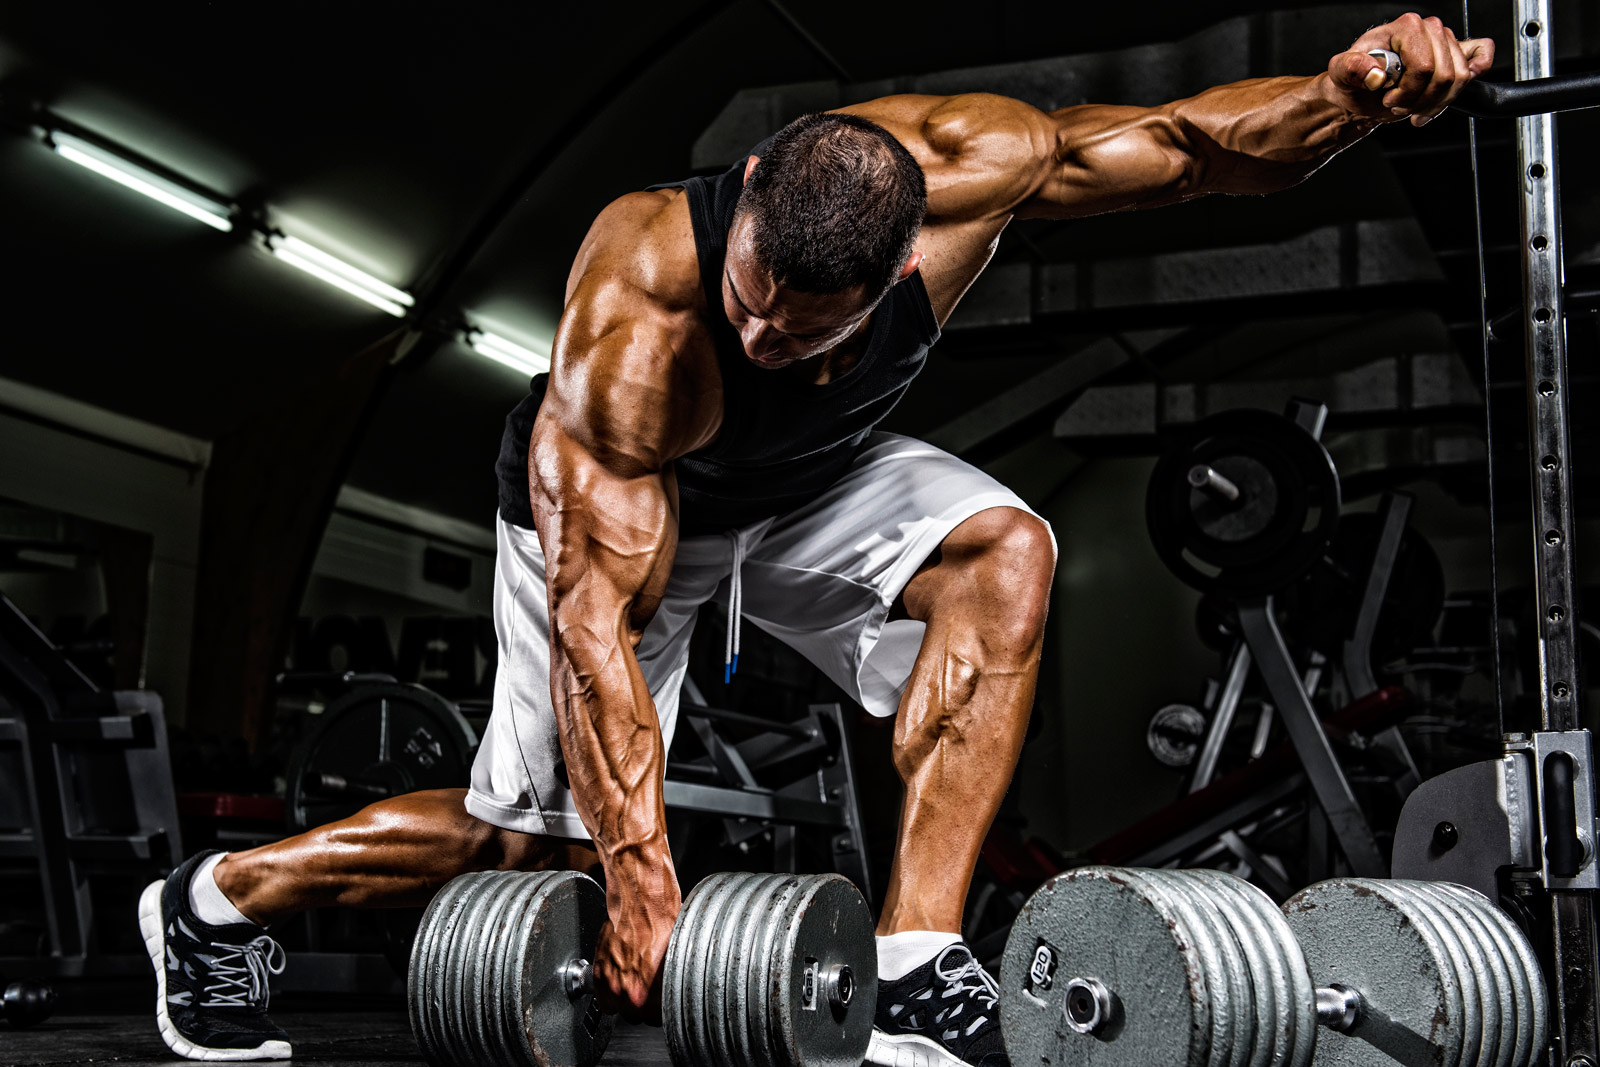 Top 10 Muscle Cutting Supplements of 2015